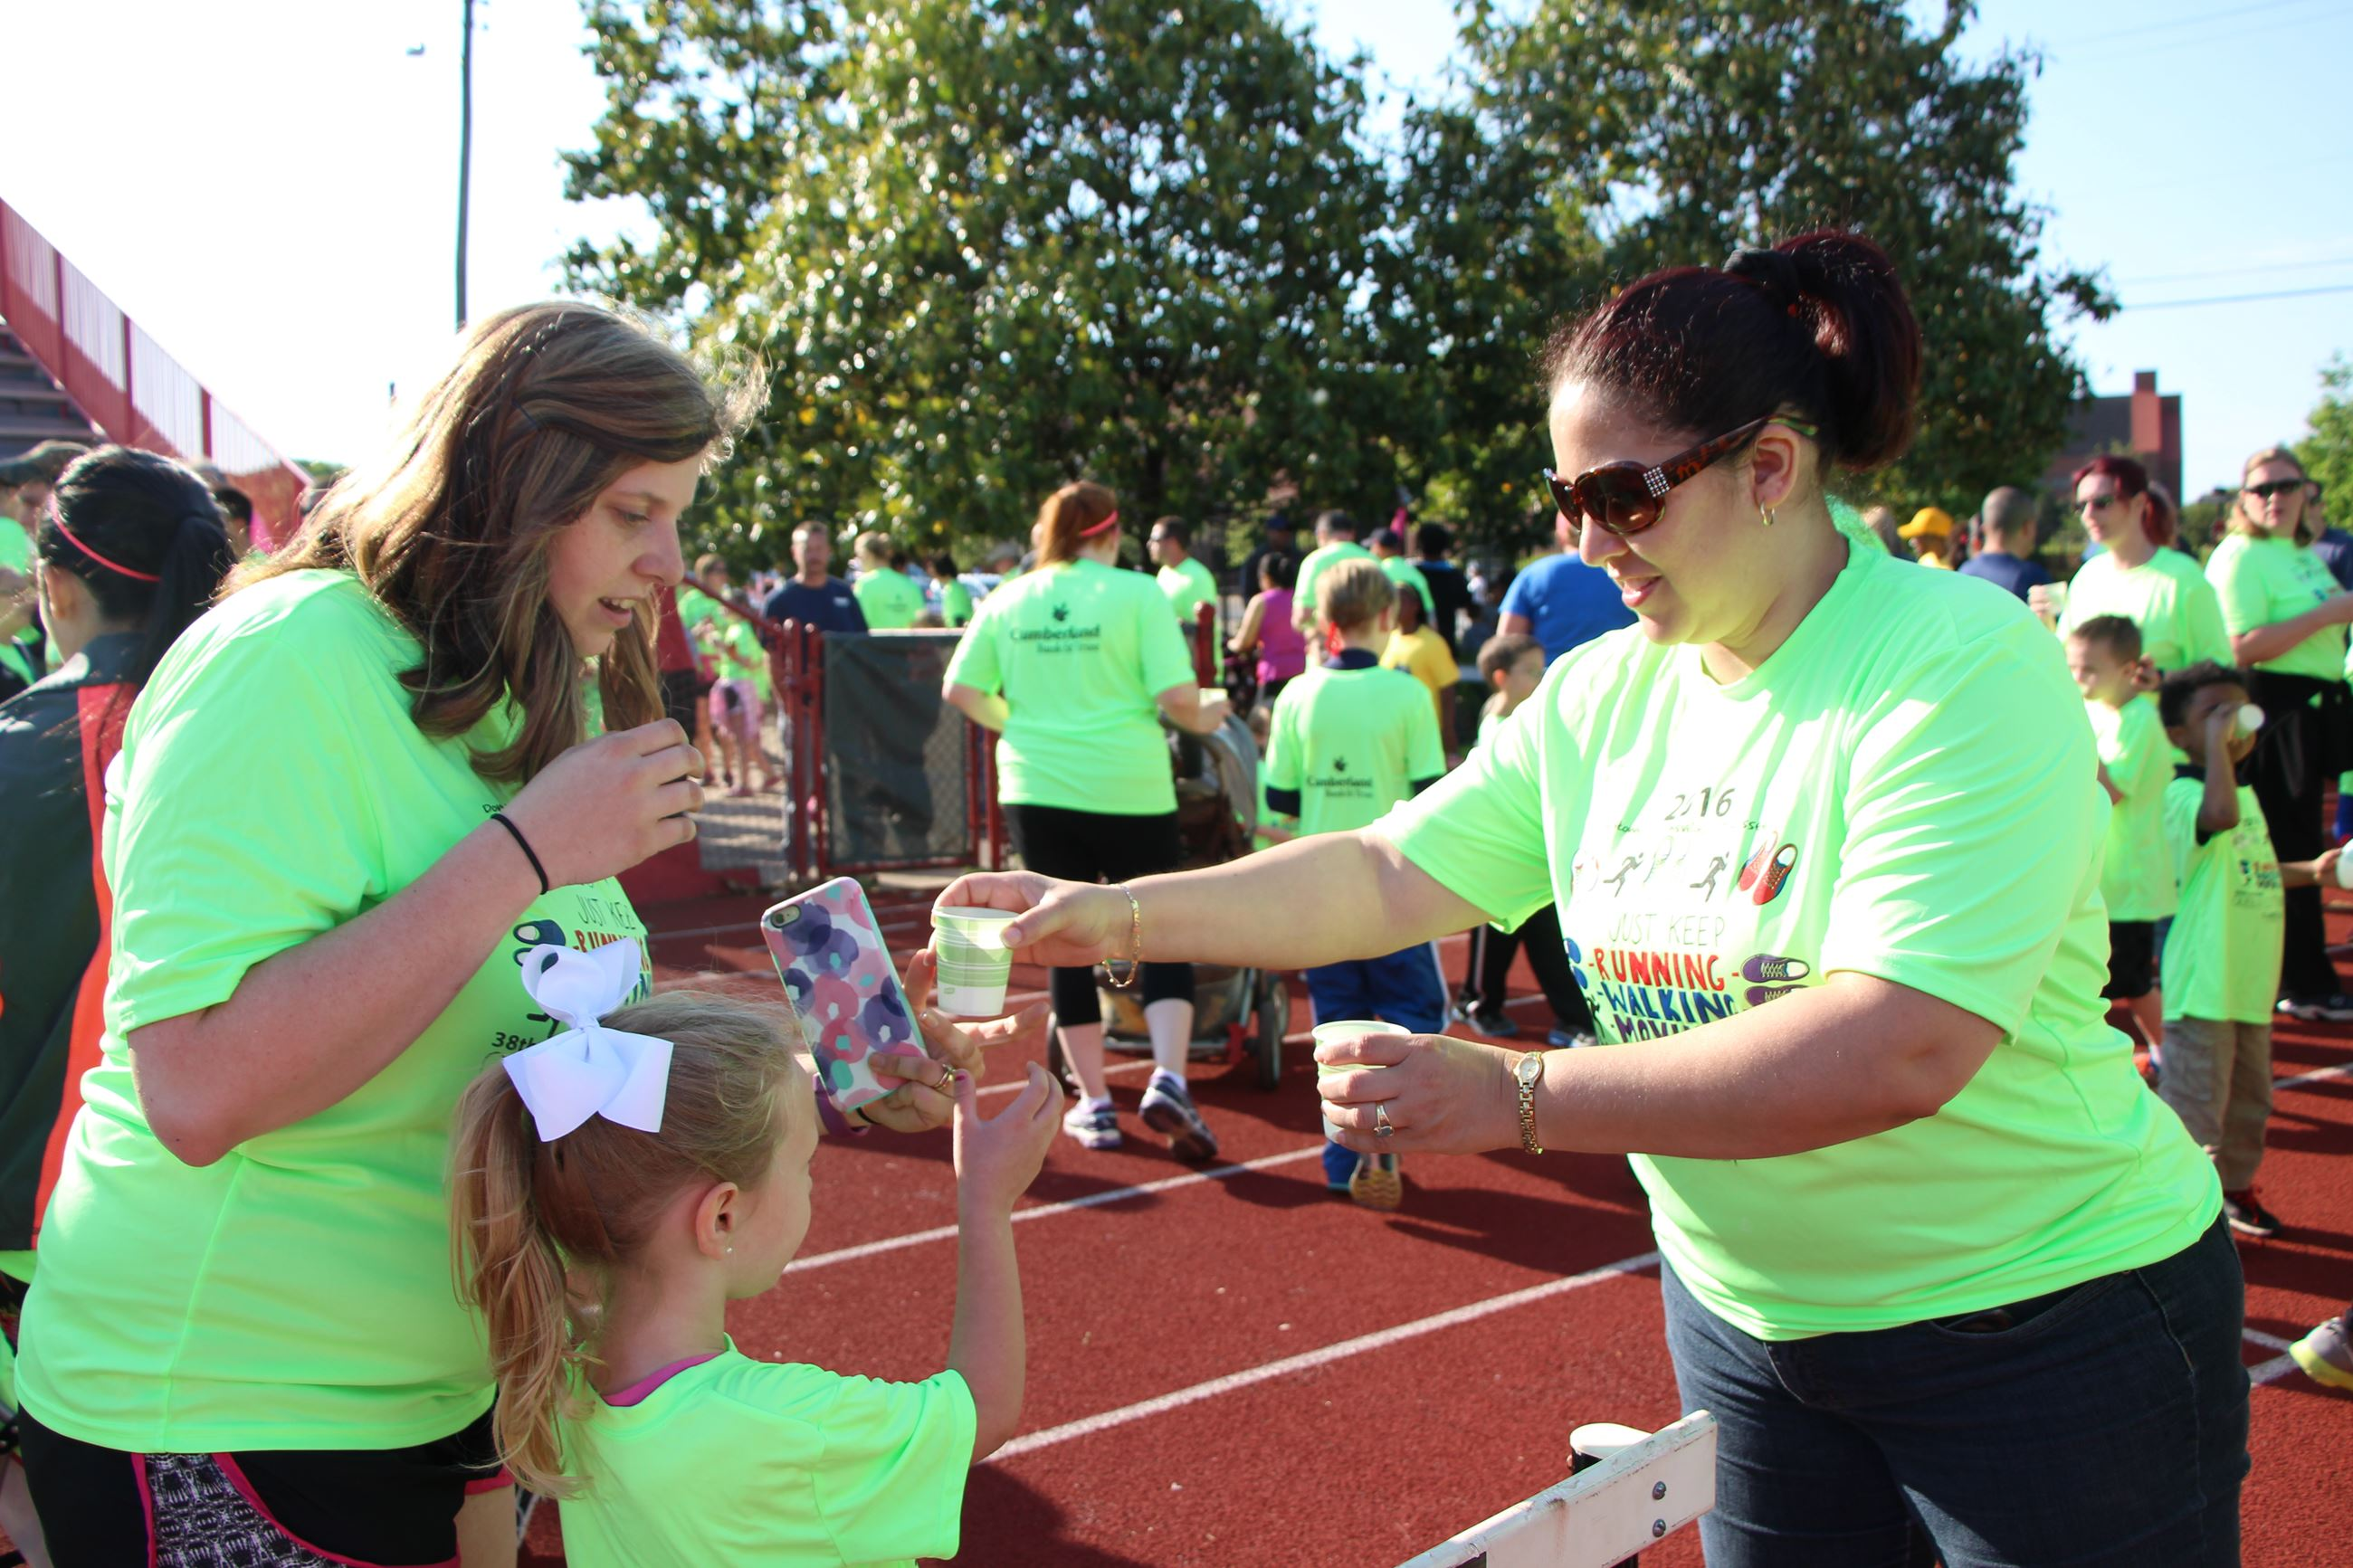 woman handing out cups of beverages at race